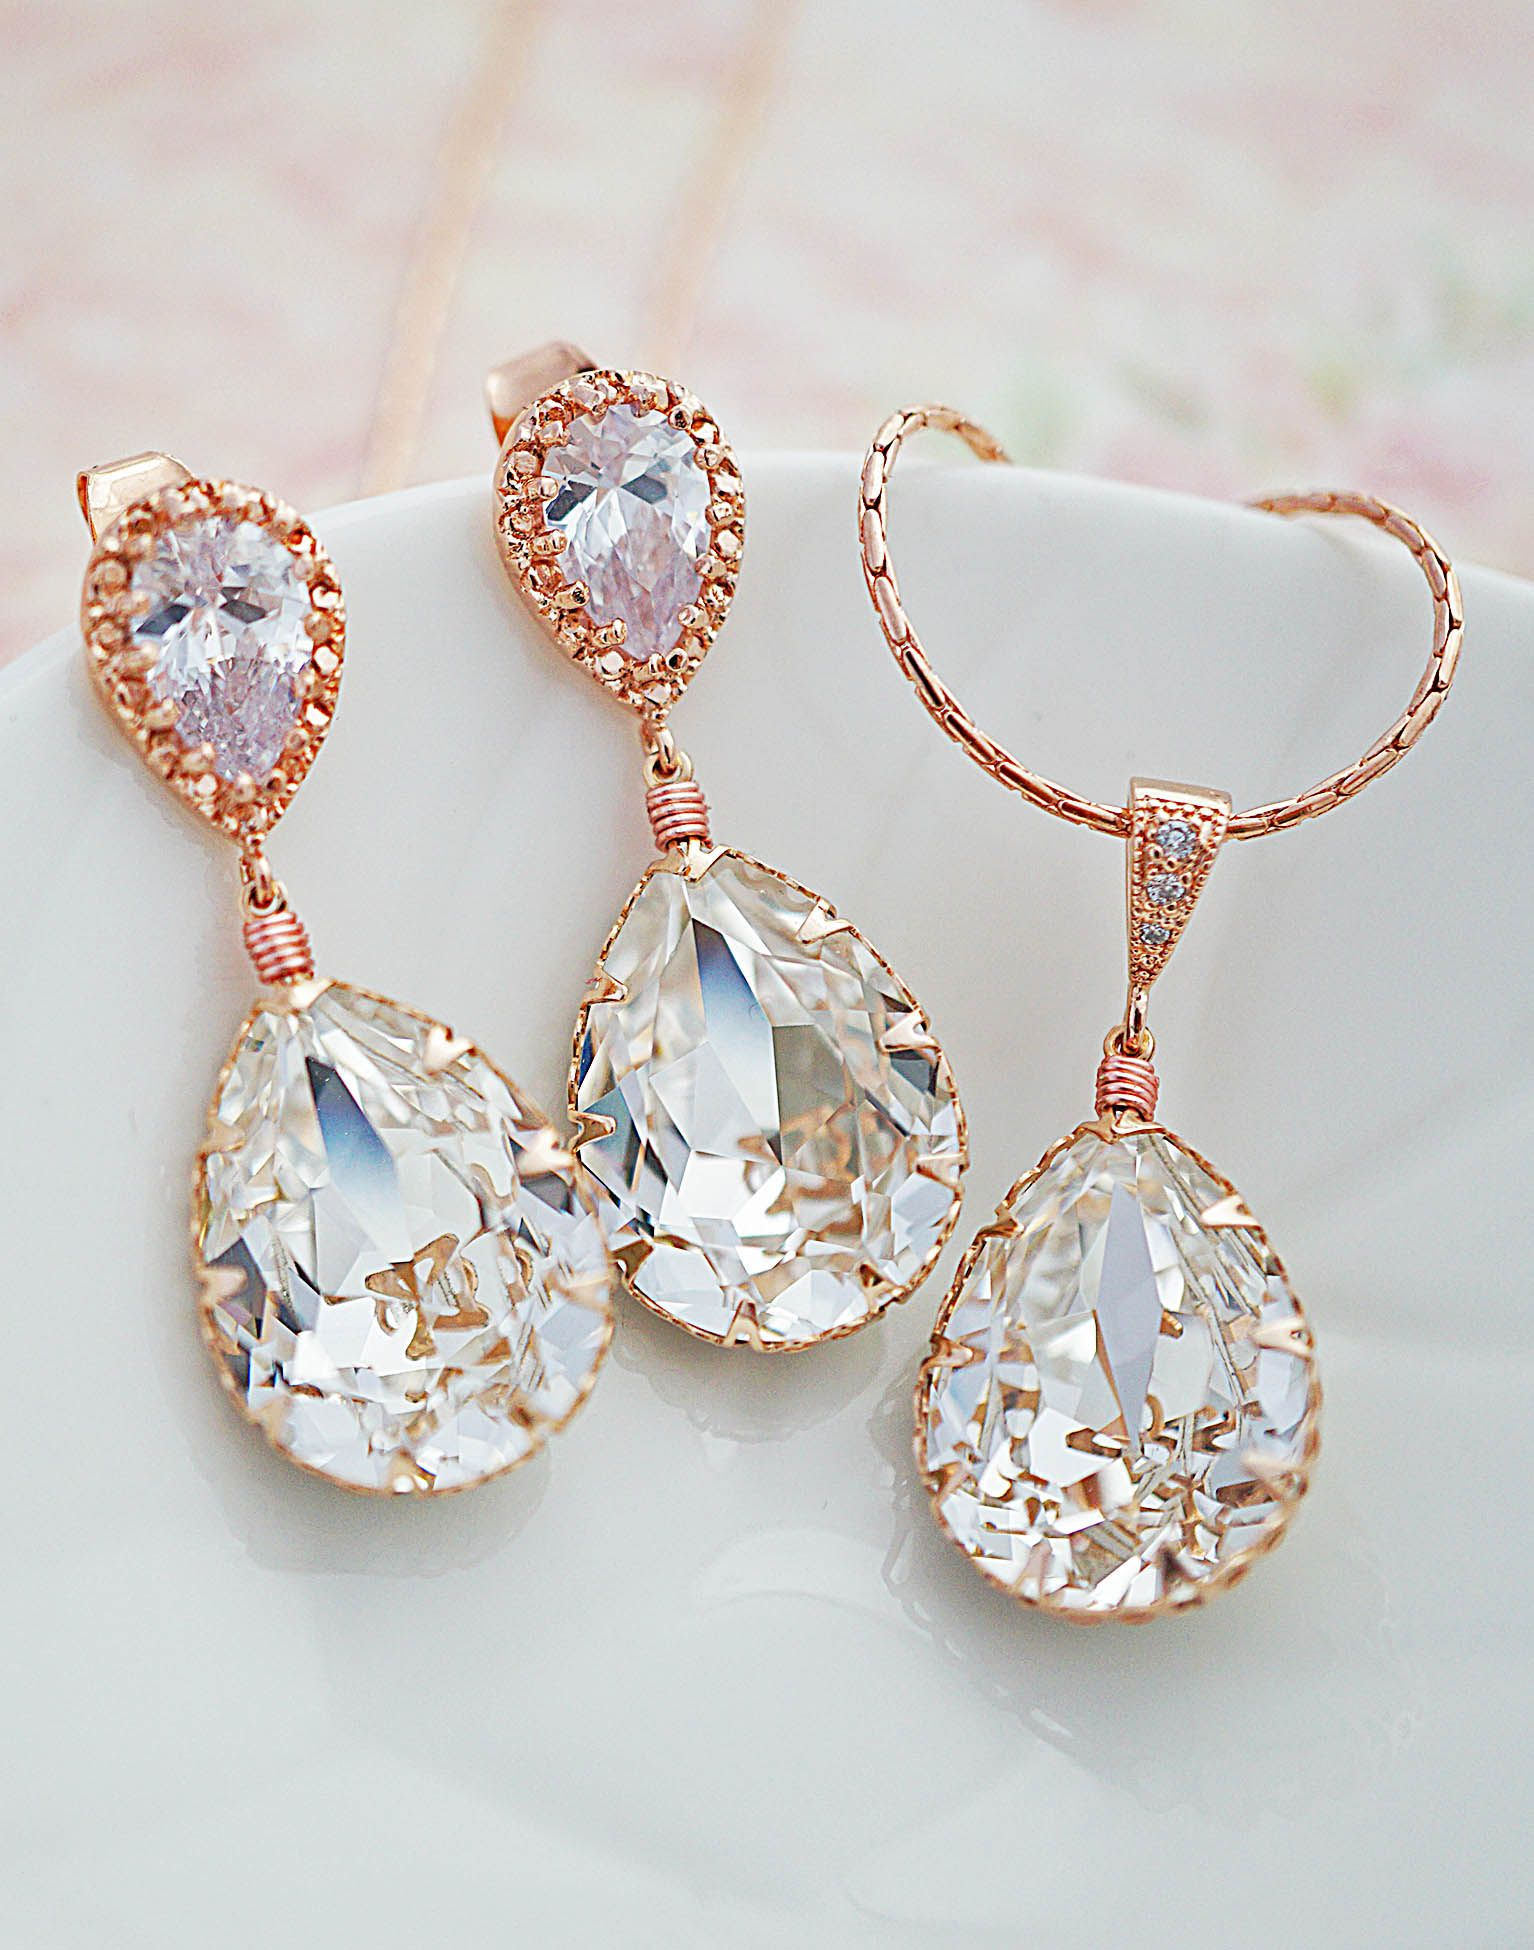 fde1d4c78 Swarovski Crystal Rose Gold Bridal Earrings and Necklace Jewelry set from EarringsNation  Wedding Earrings Rose Gold Weddings Blush weddings Bridal Jewelry ...